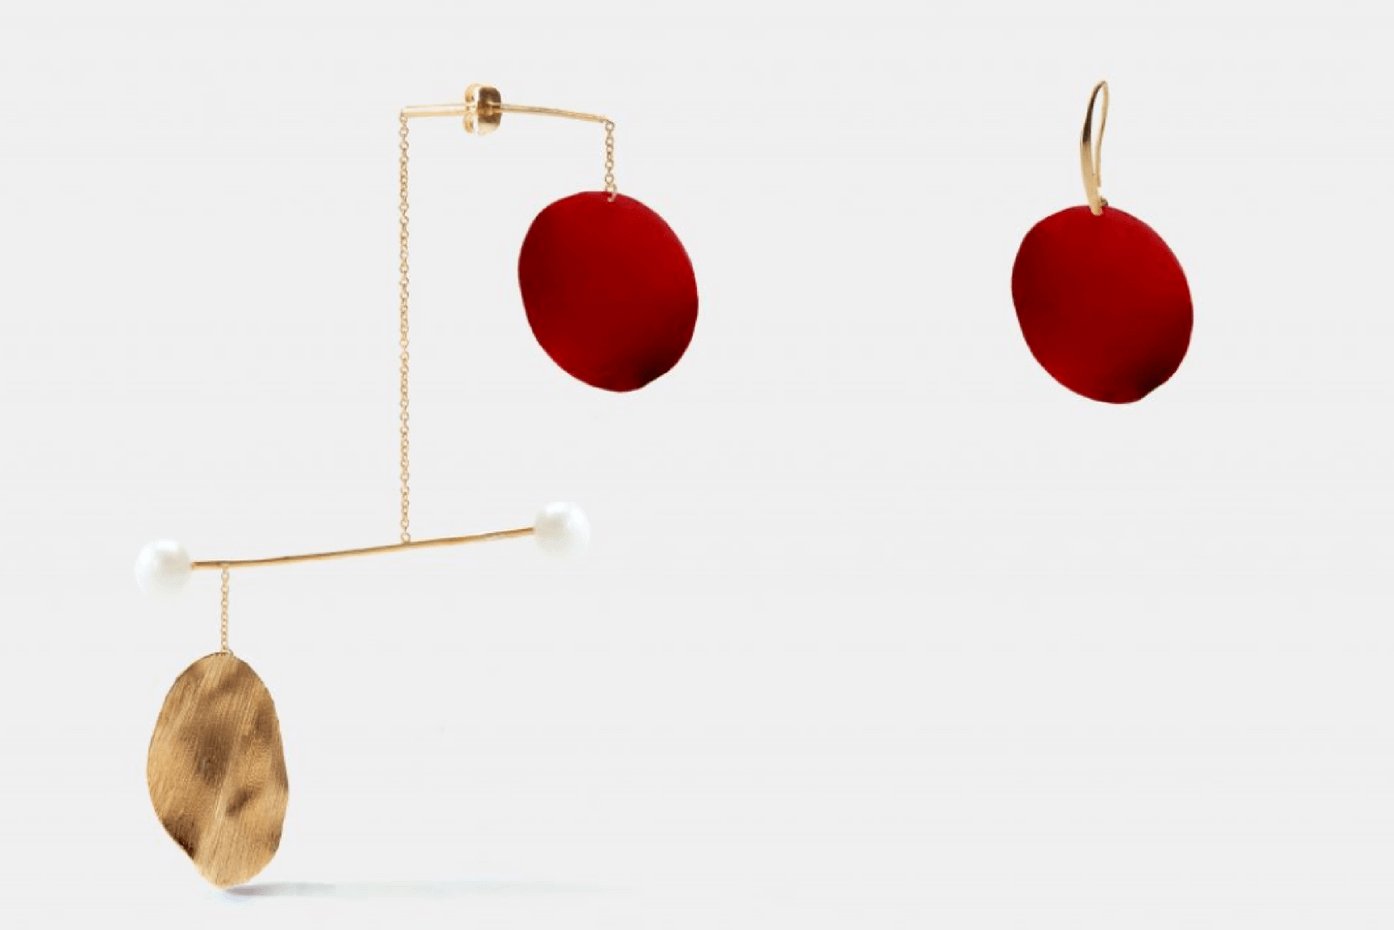 Anissa Kermiche earrings in collaboration with Rejina Pyo. 18k yellow gold plated brass, freshwater pearls, red enamel.